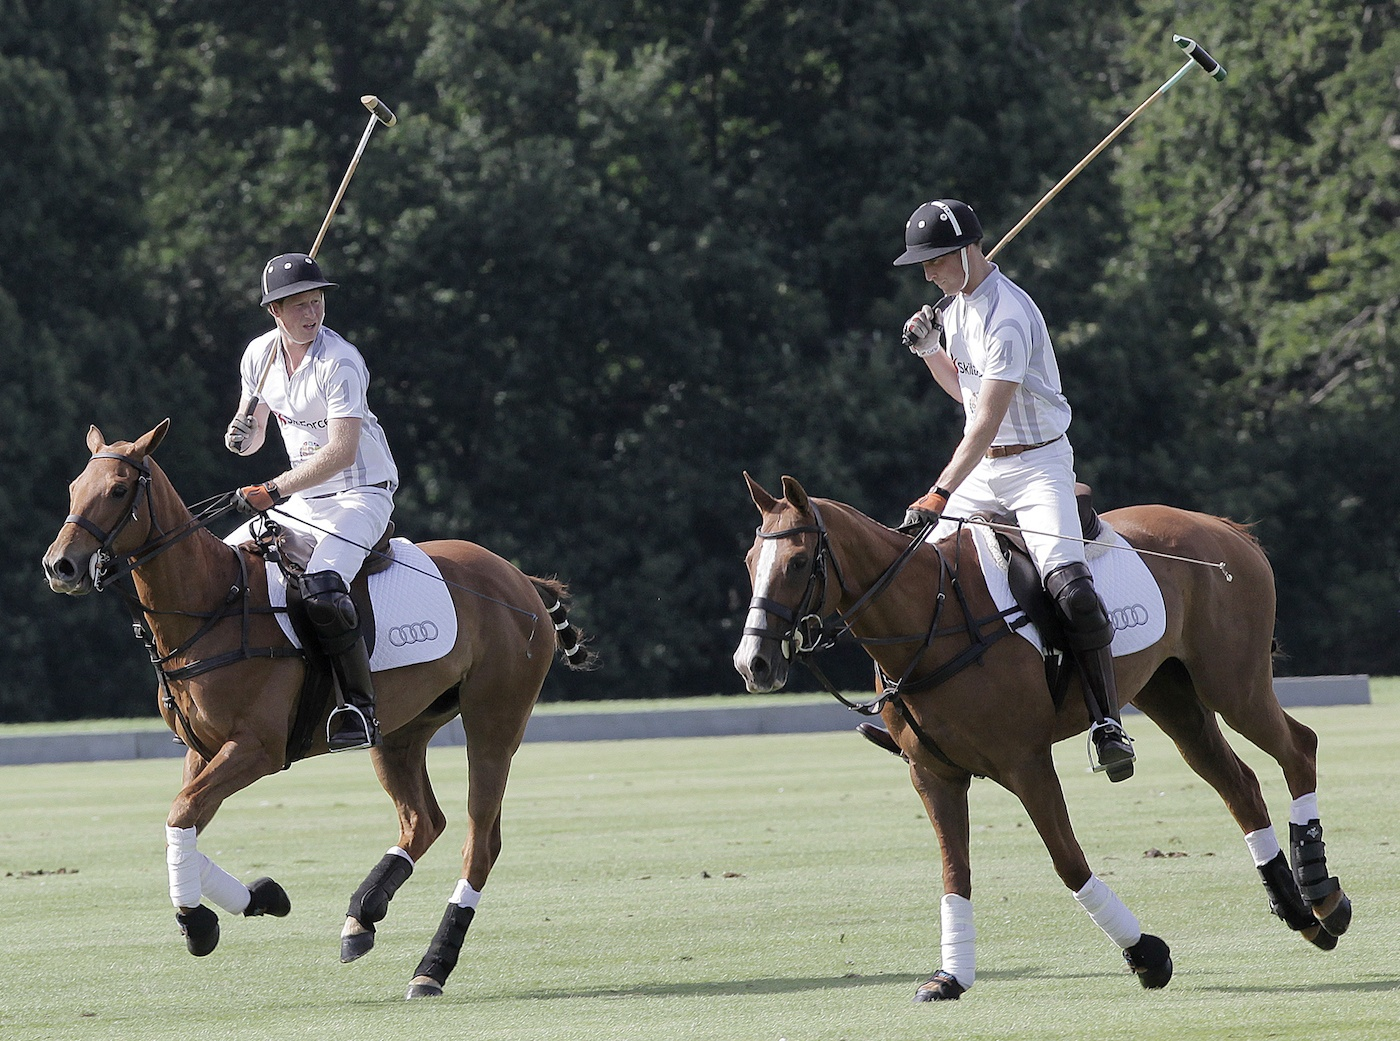 Prince Harry and Prince William playing polo